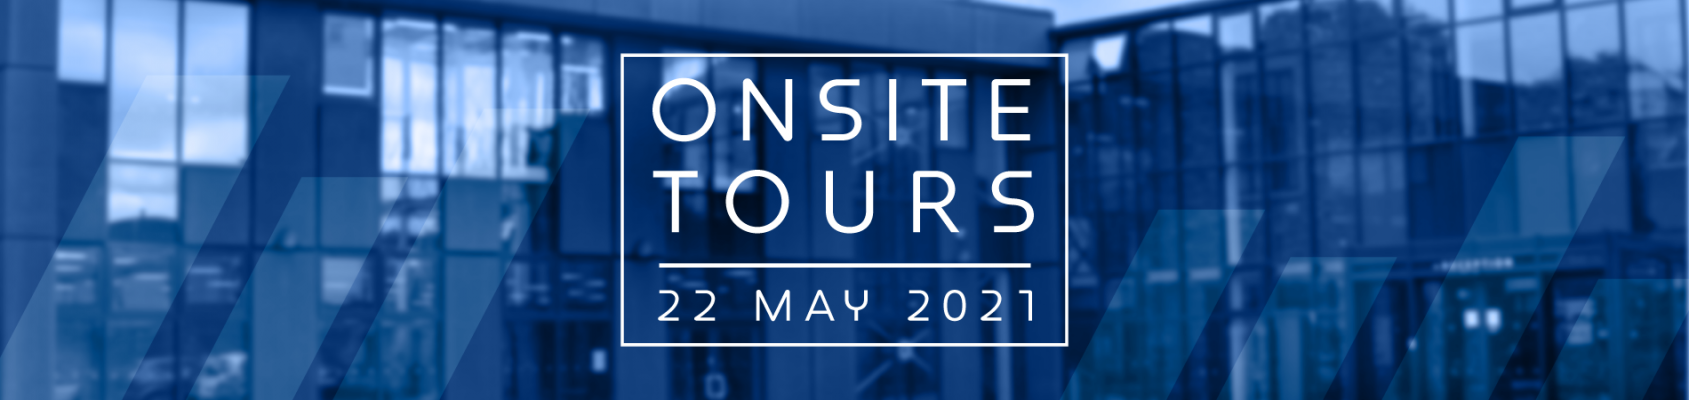 Onsite tours May